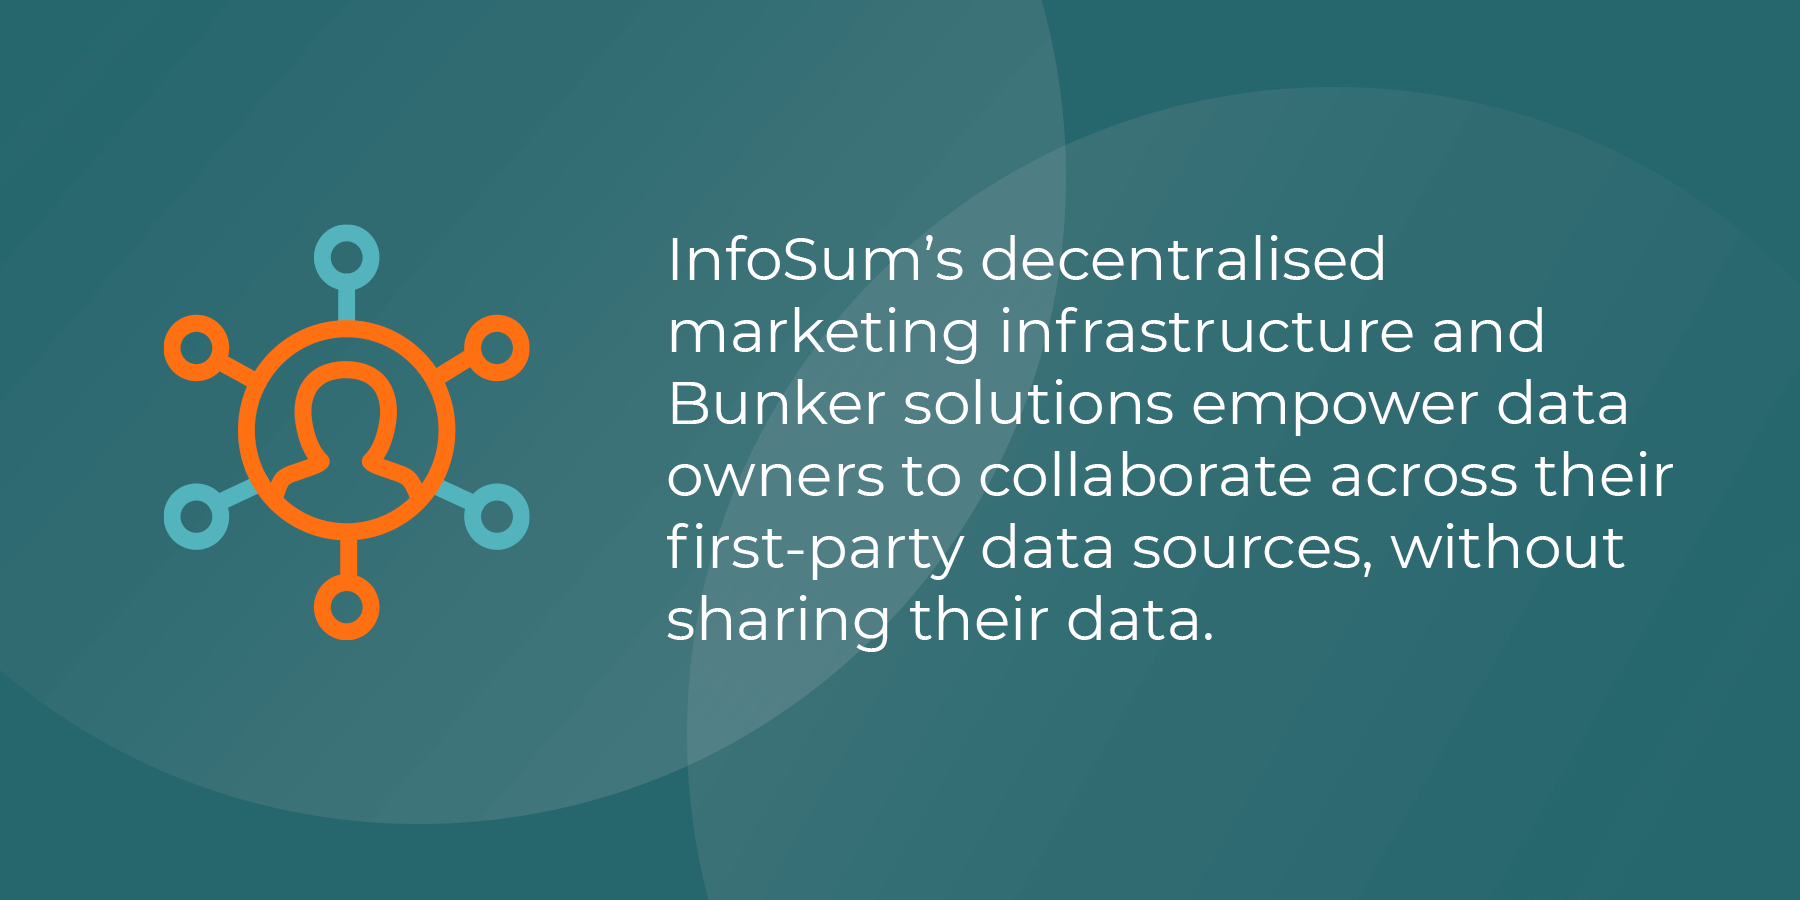 InfoSum's decentralised marketing infrastructure and Bunker solutions empower data owners to collaborate across their first-party data sources, without sharing their data.